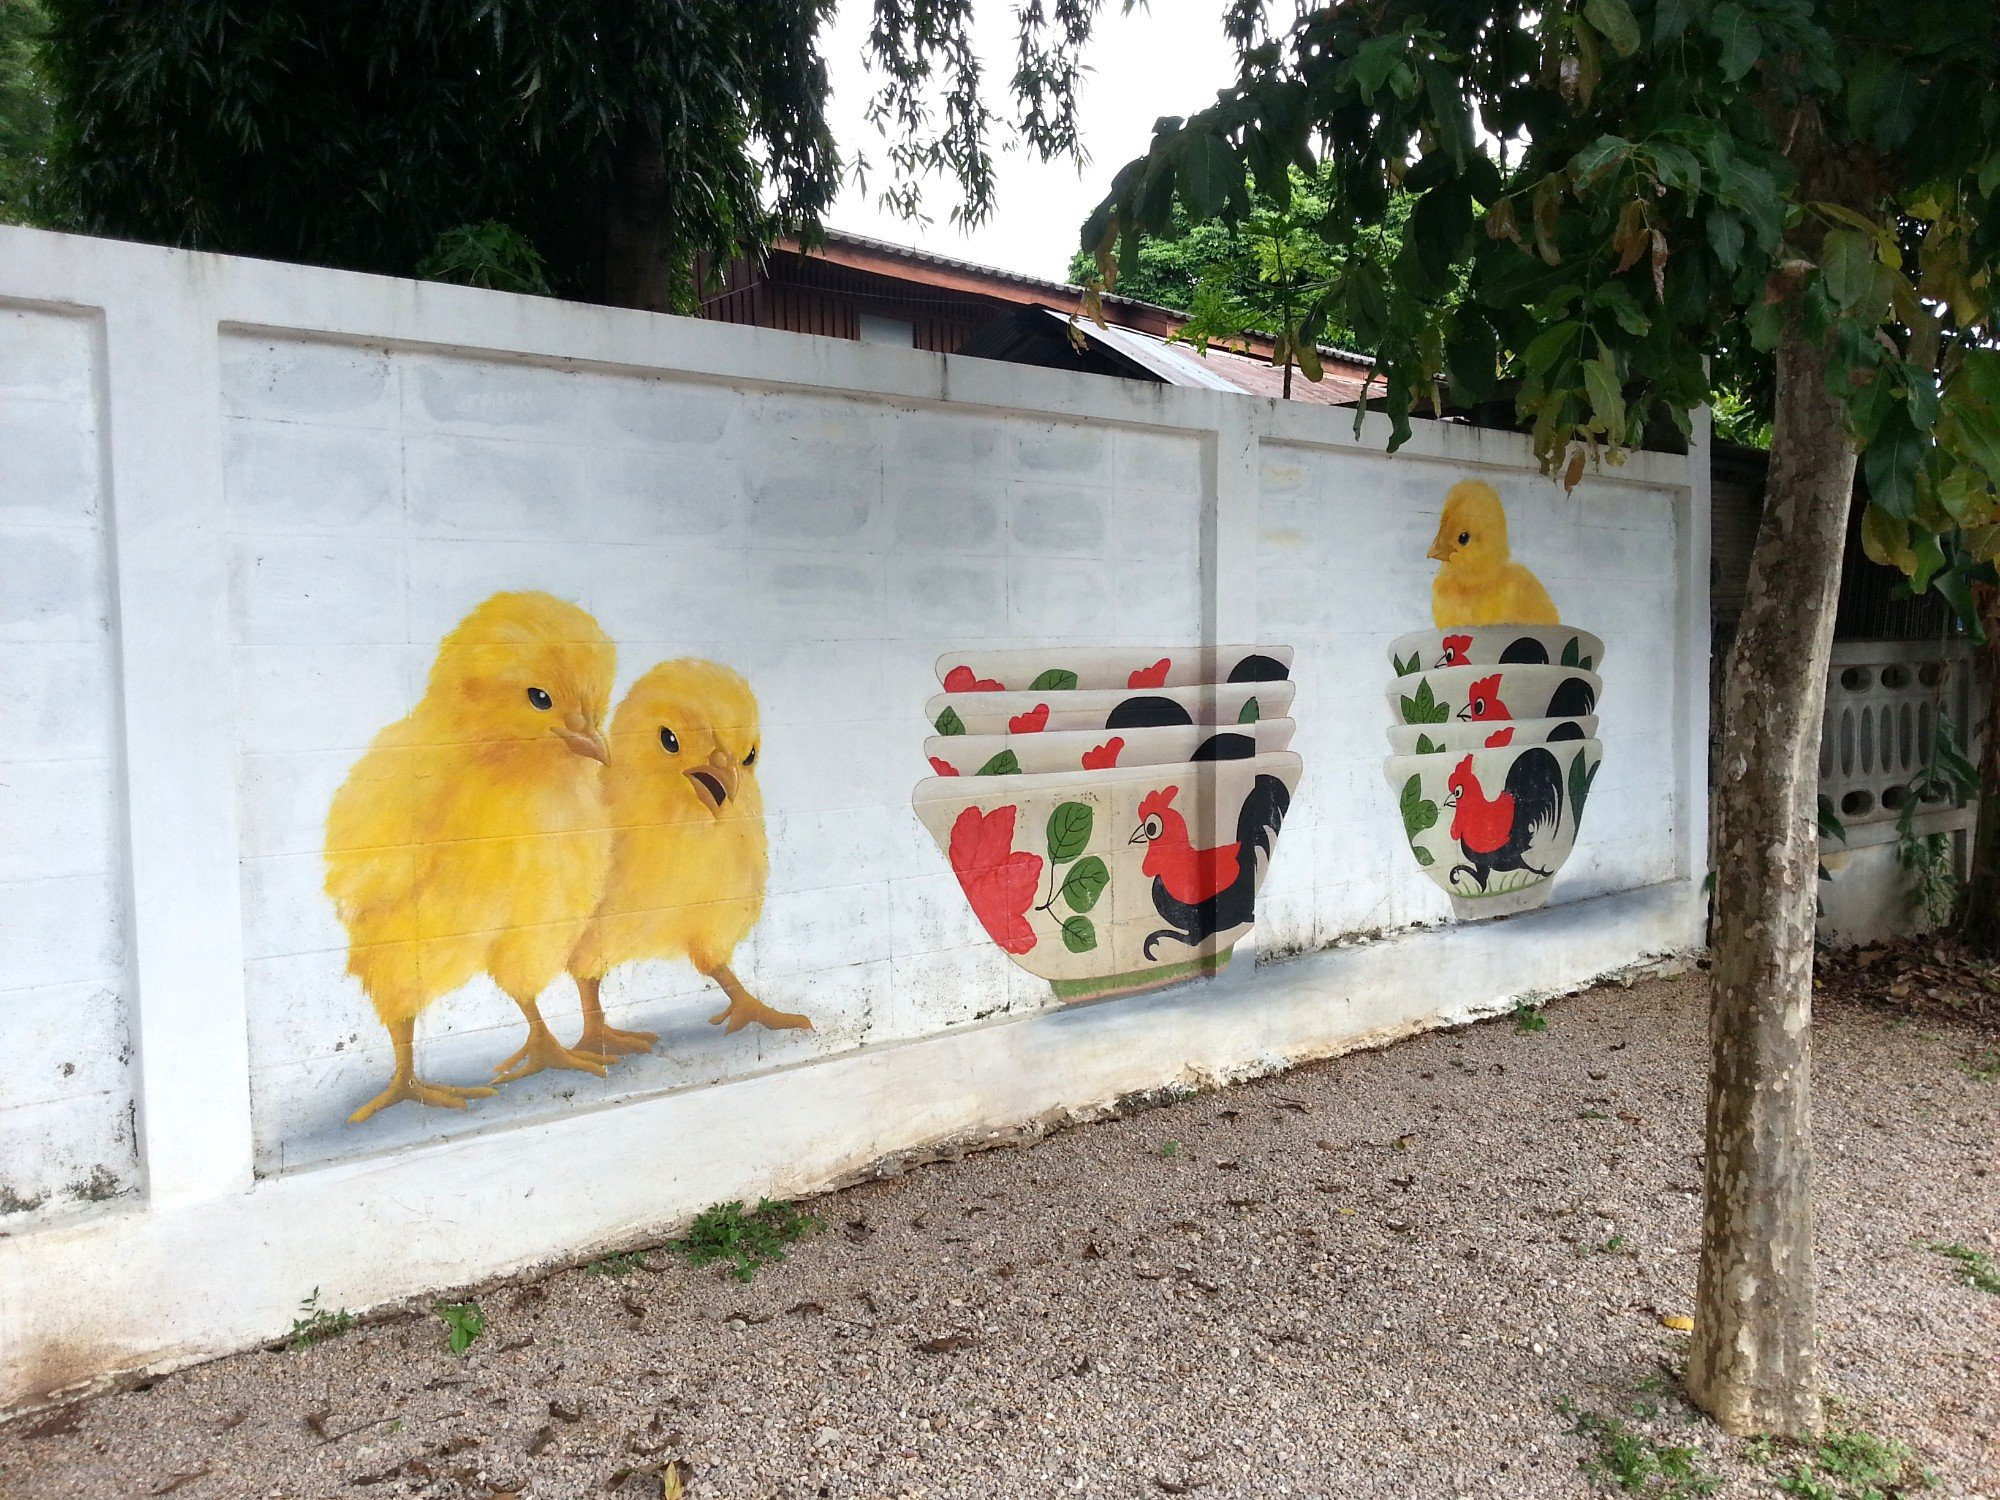 Chicks in bowls mural in Lampang